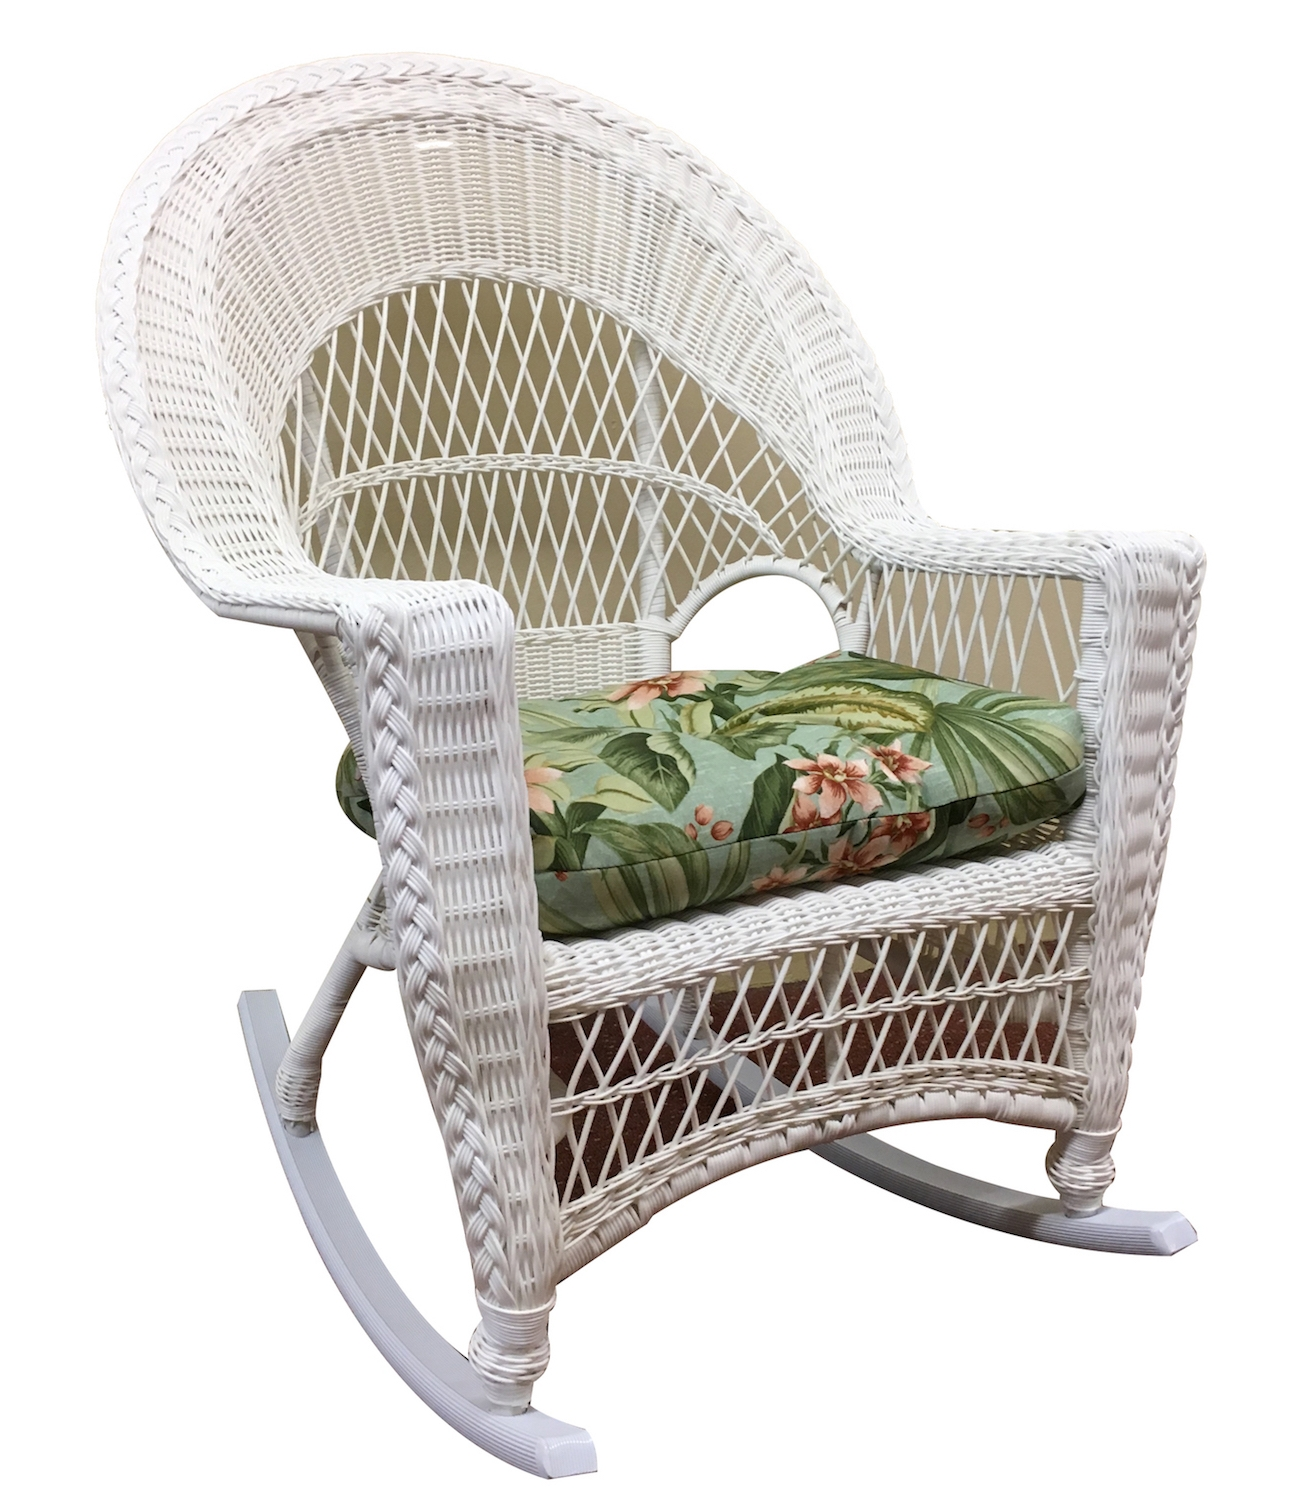 Most Current Wicker Rocking Chair Design Outdoor Swivel Rockers Black Agreeable With Regard To Outdoor Wicker Rocking Chairs (View 18 of 20)